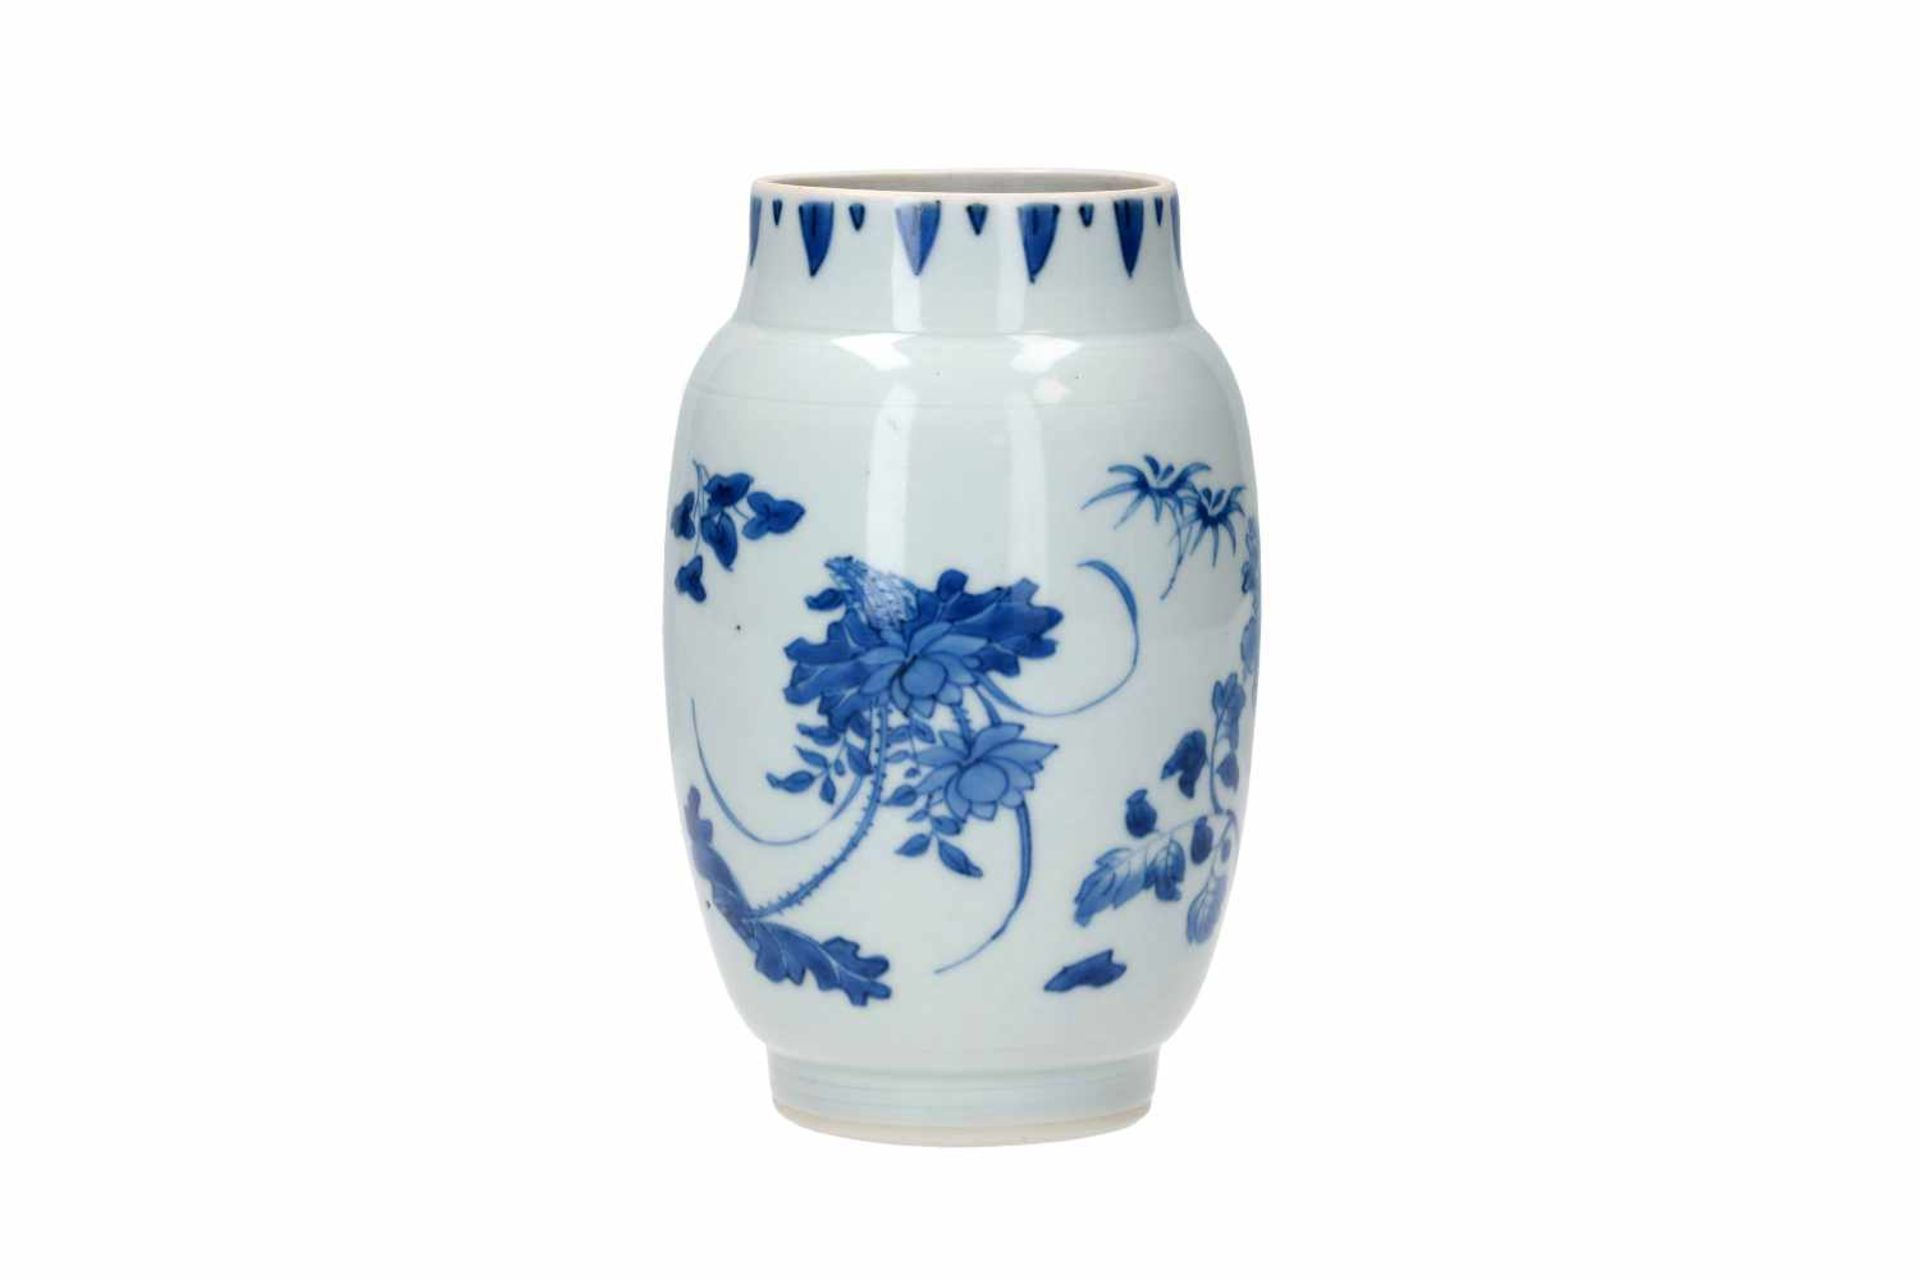 A blue and white porcelain jar, decorated with flowers. Unmarked. China, Transition.